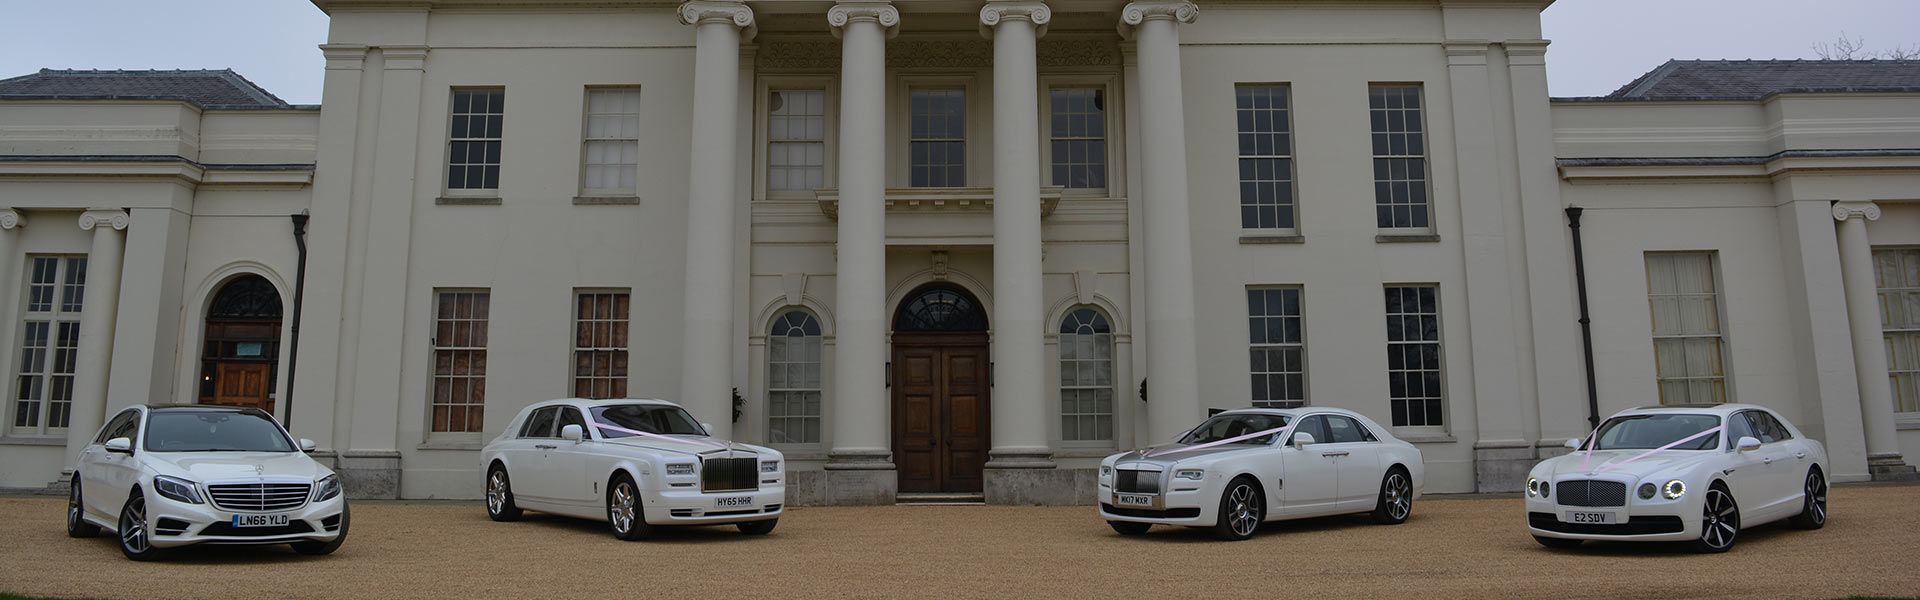 wedding cars fleet London